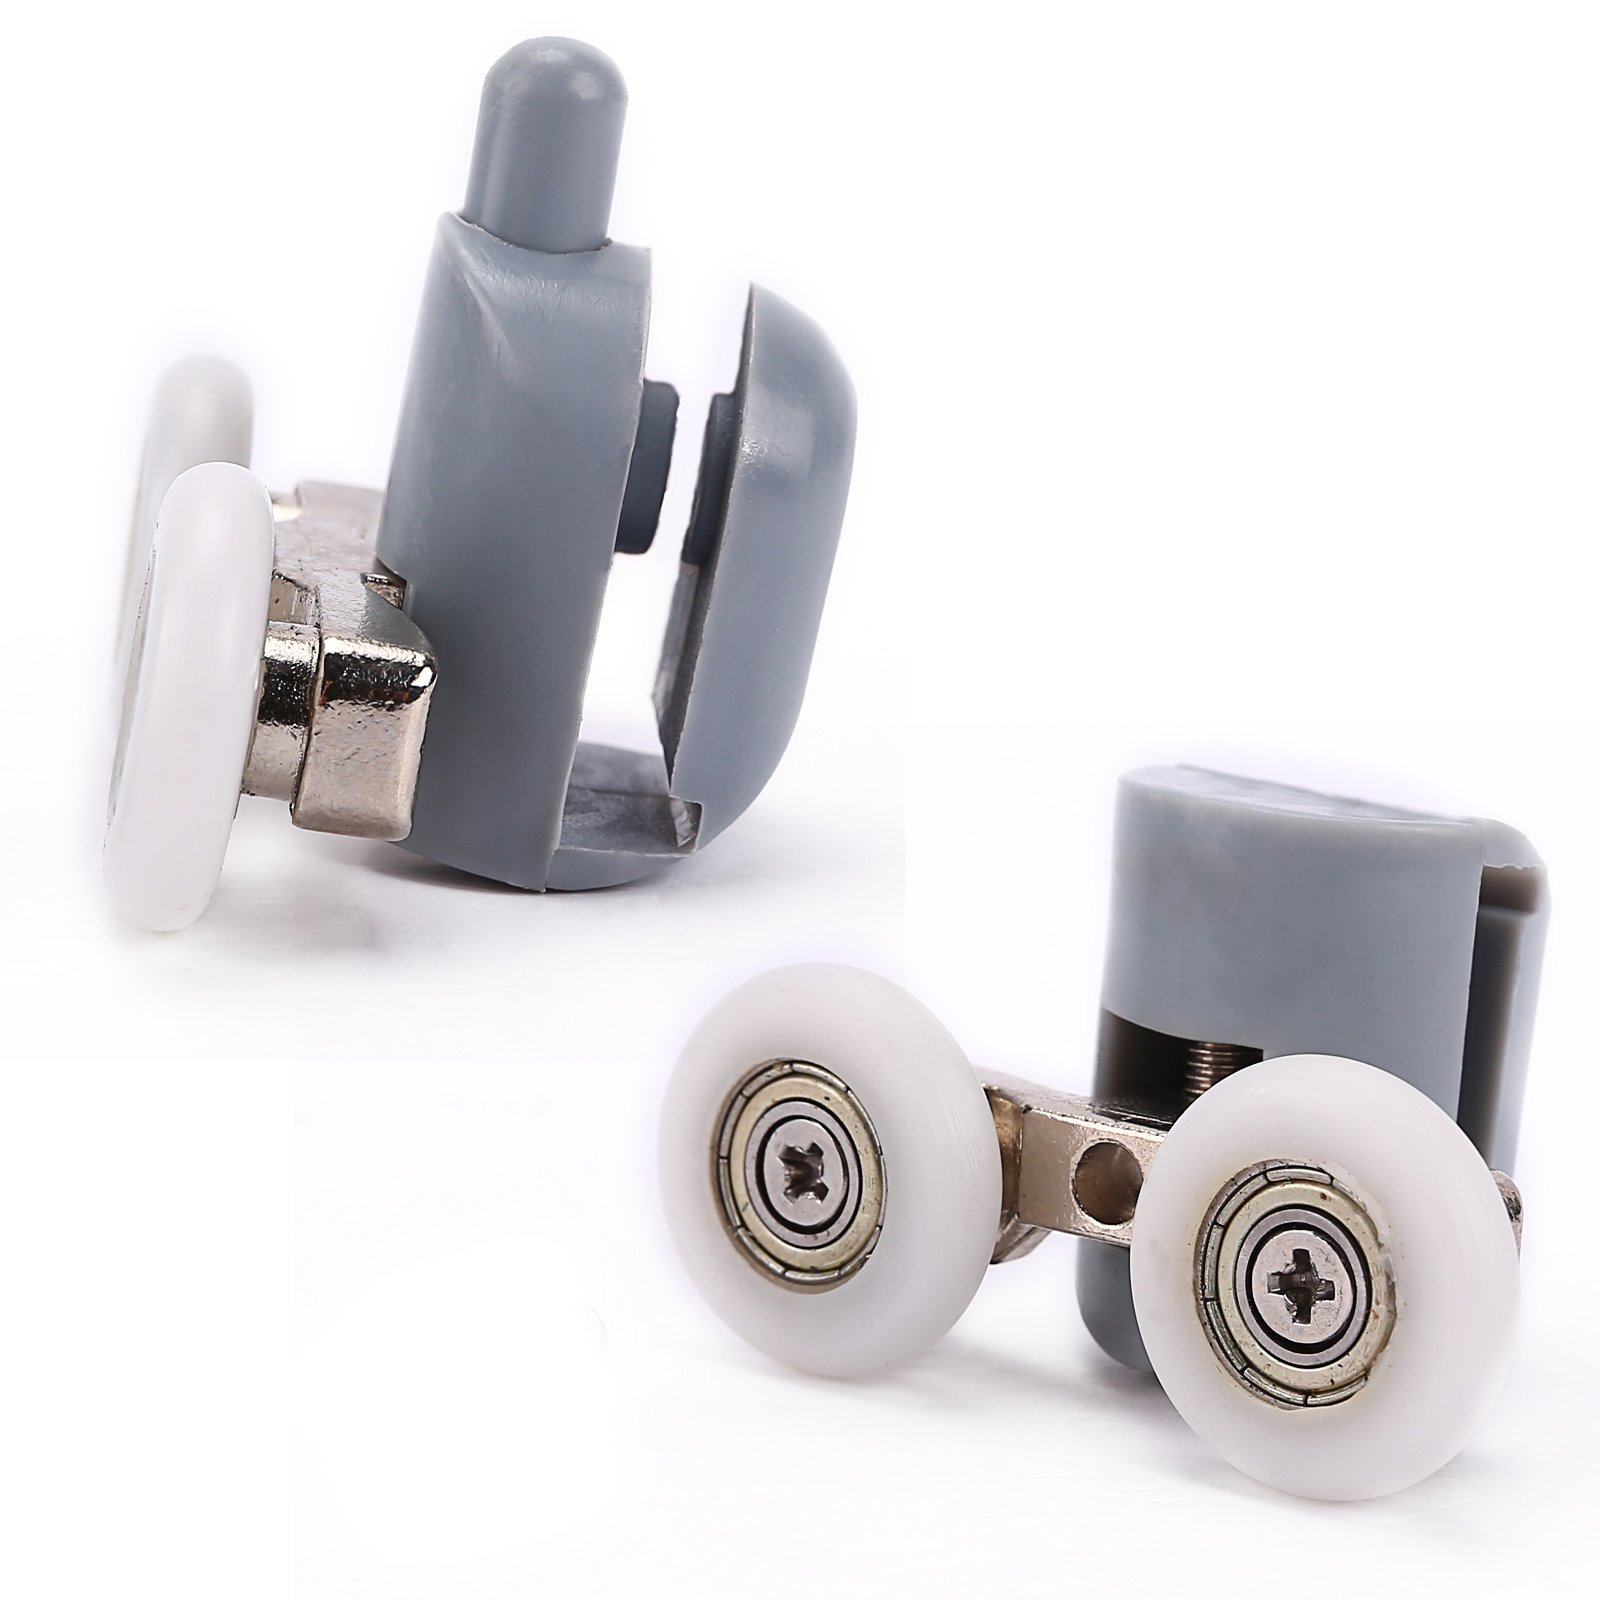 Duscht?r Rollen : Twin Runners Top Shower Door Rollers Wheels